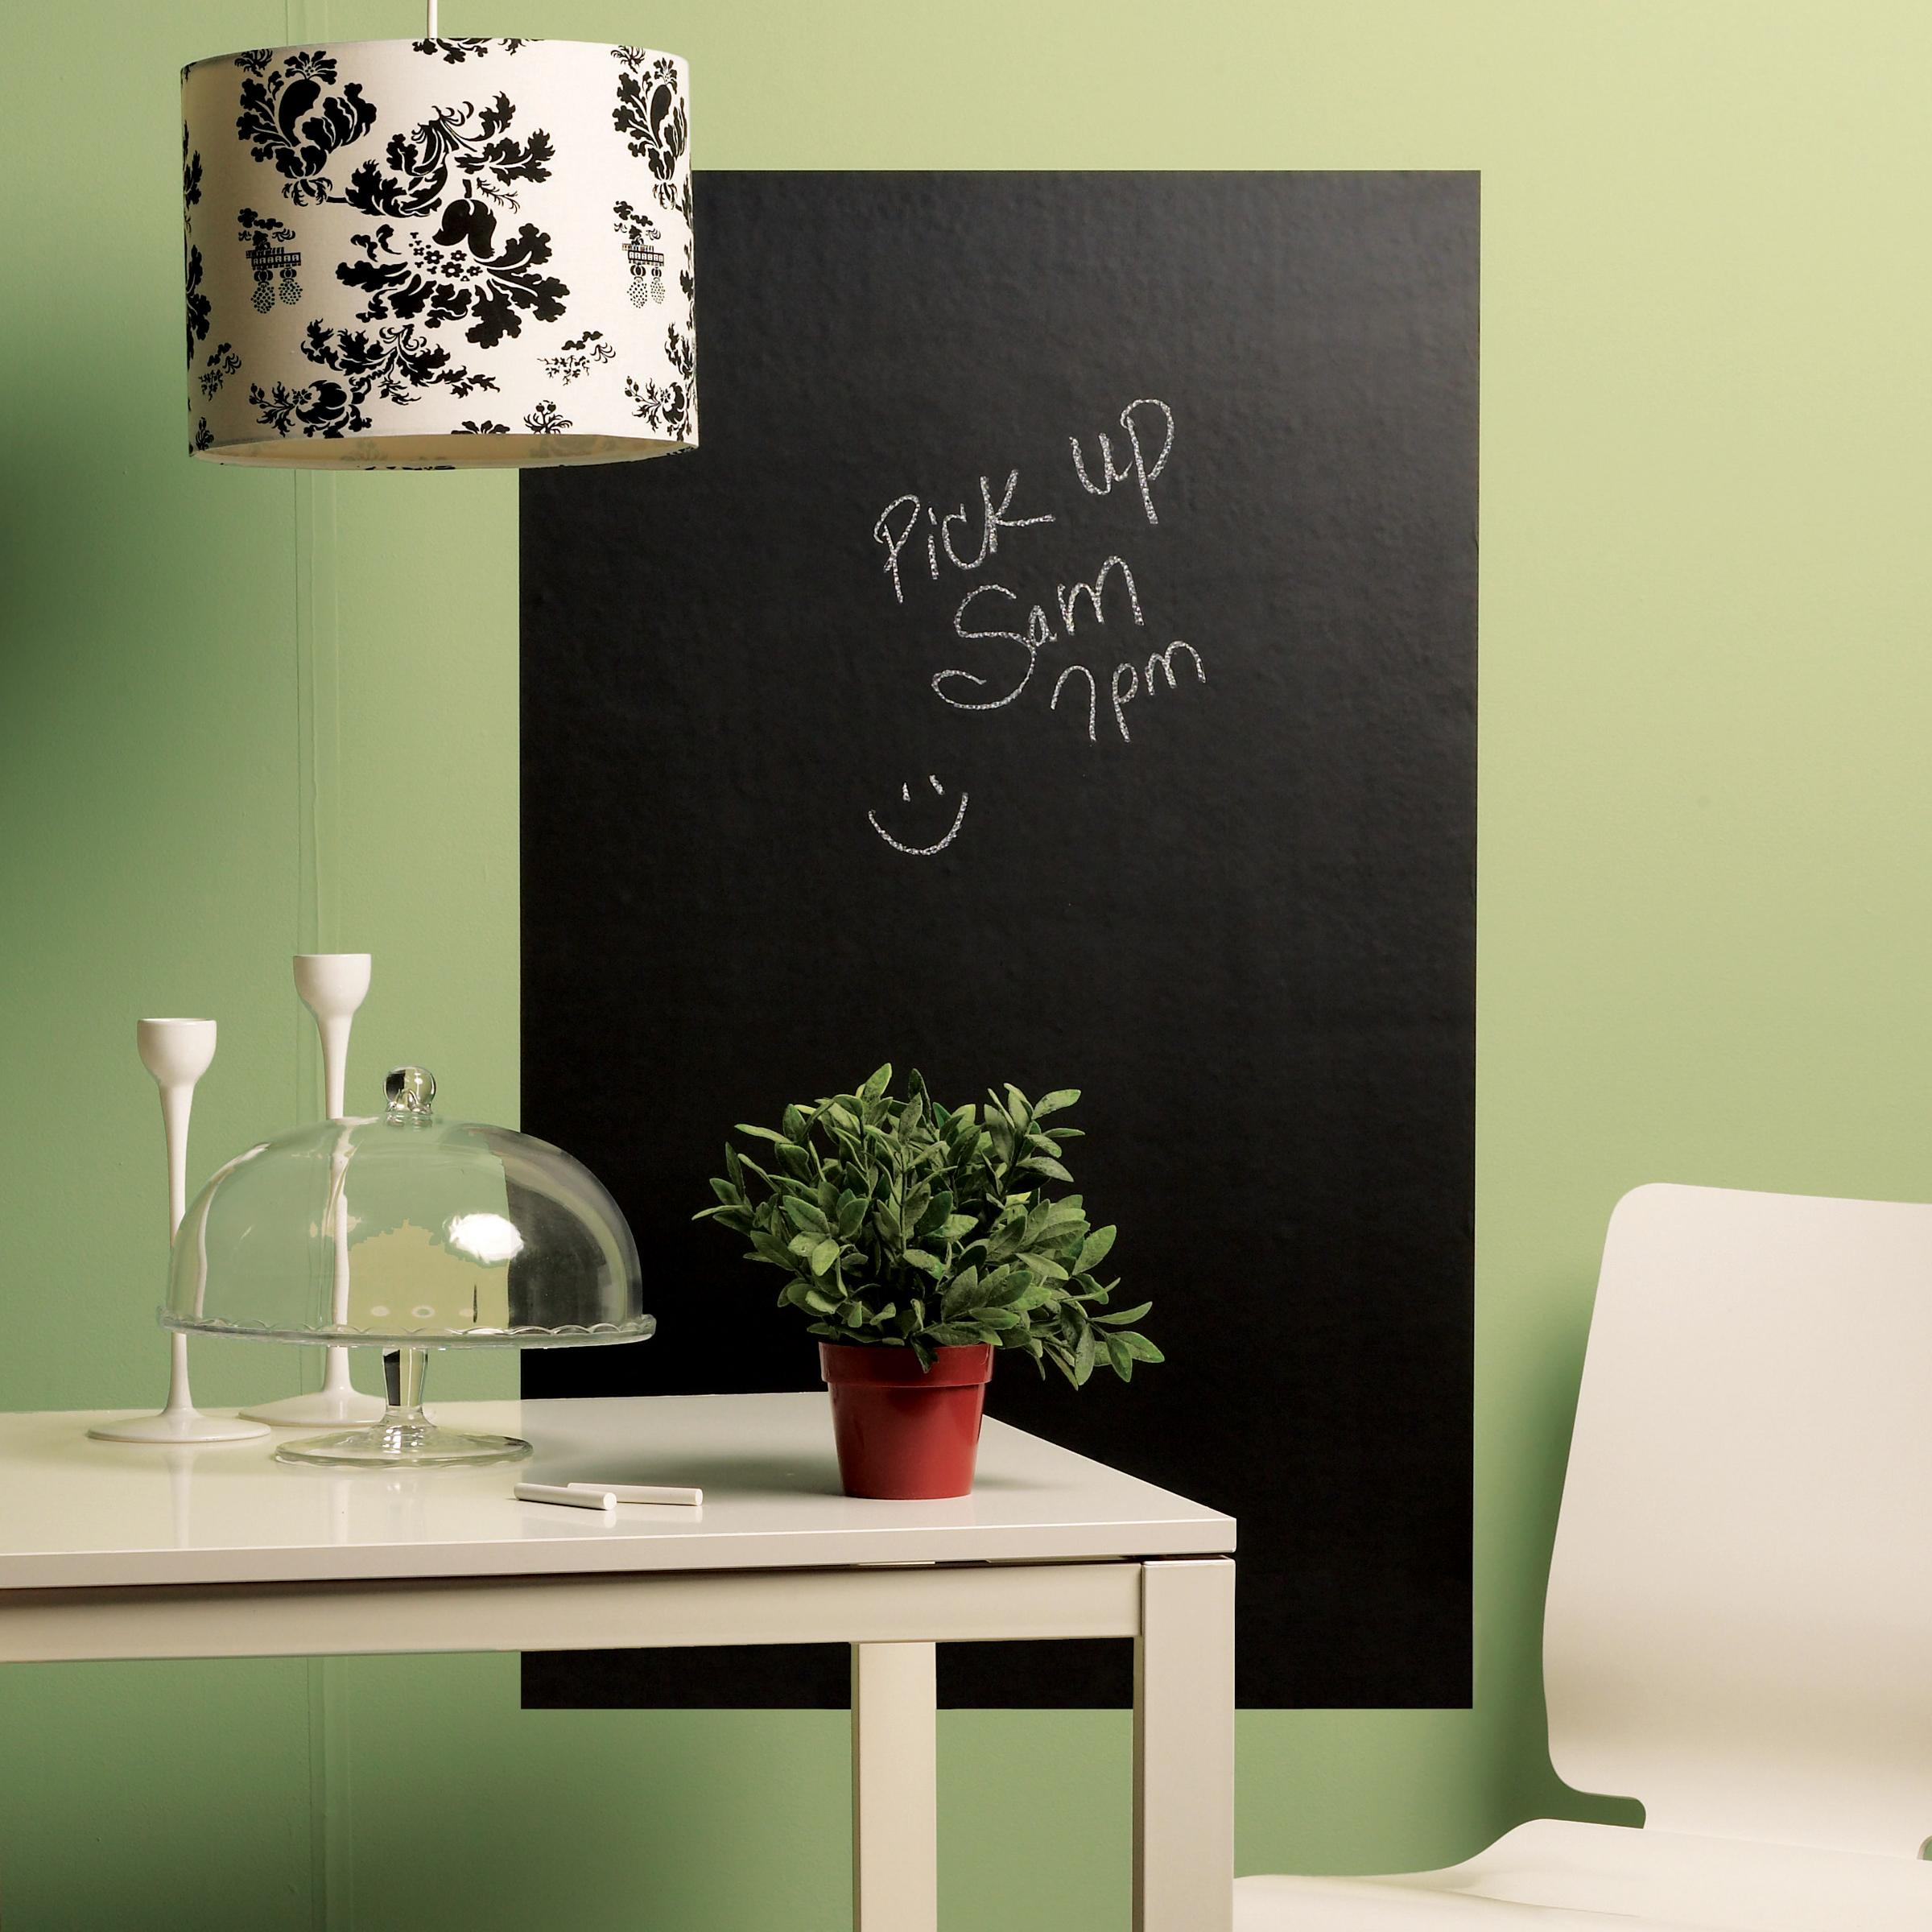 amazoncom wallies wall decals big reusable chalkboard wall  - view larger